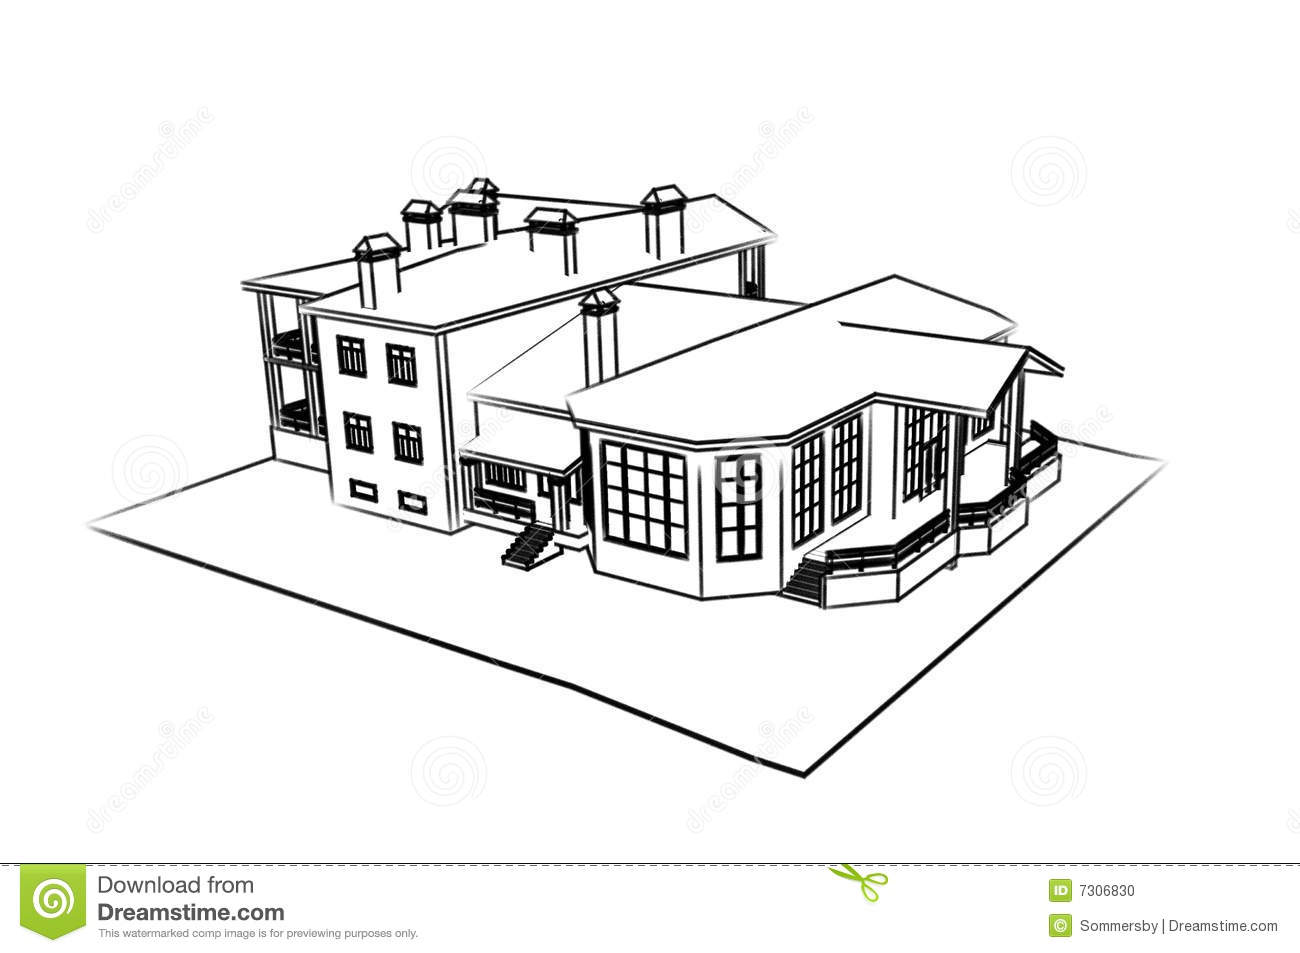 House 3d Technical Draw Stock Photo Image 7306830: 3d house drawing